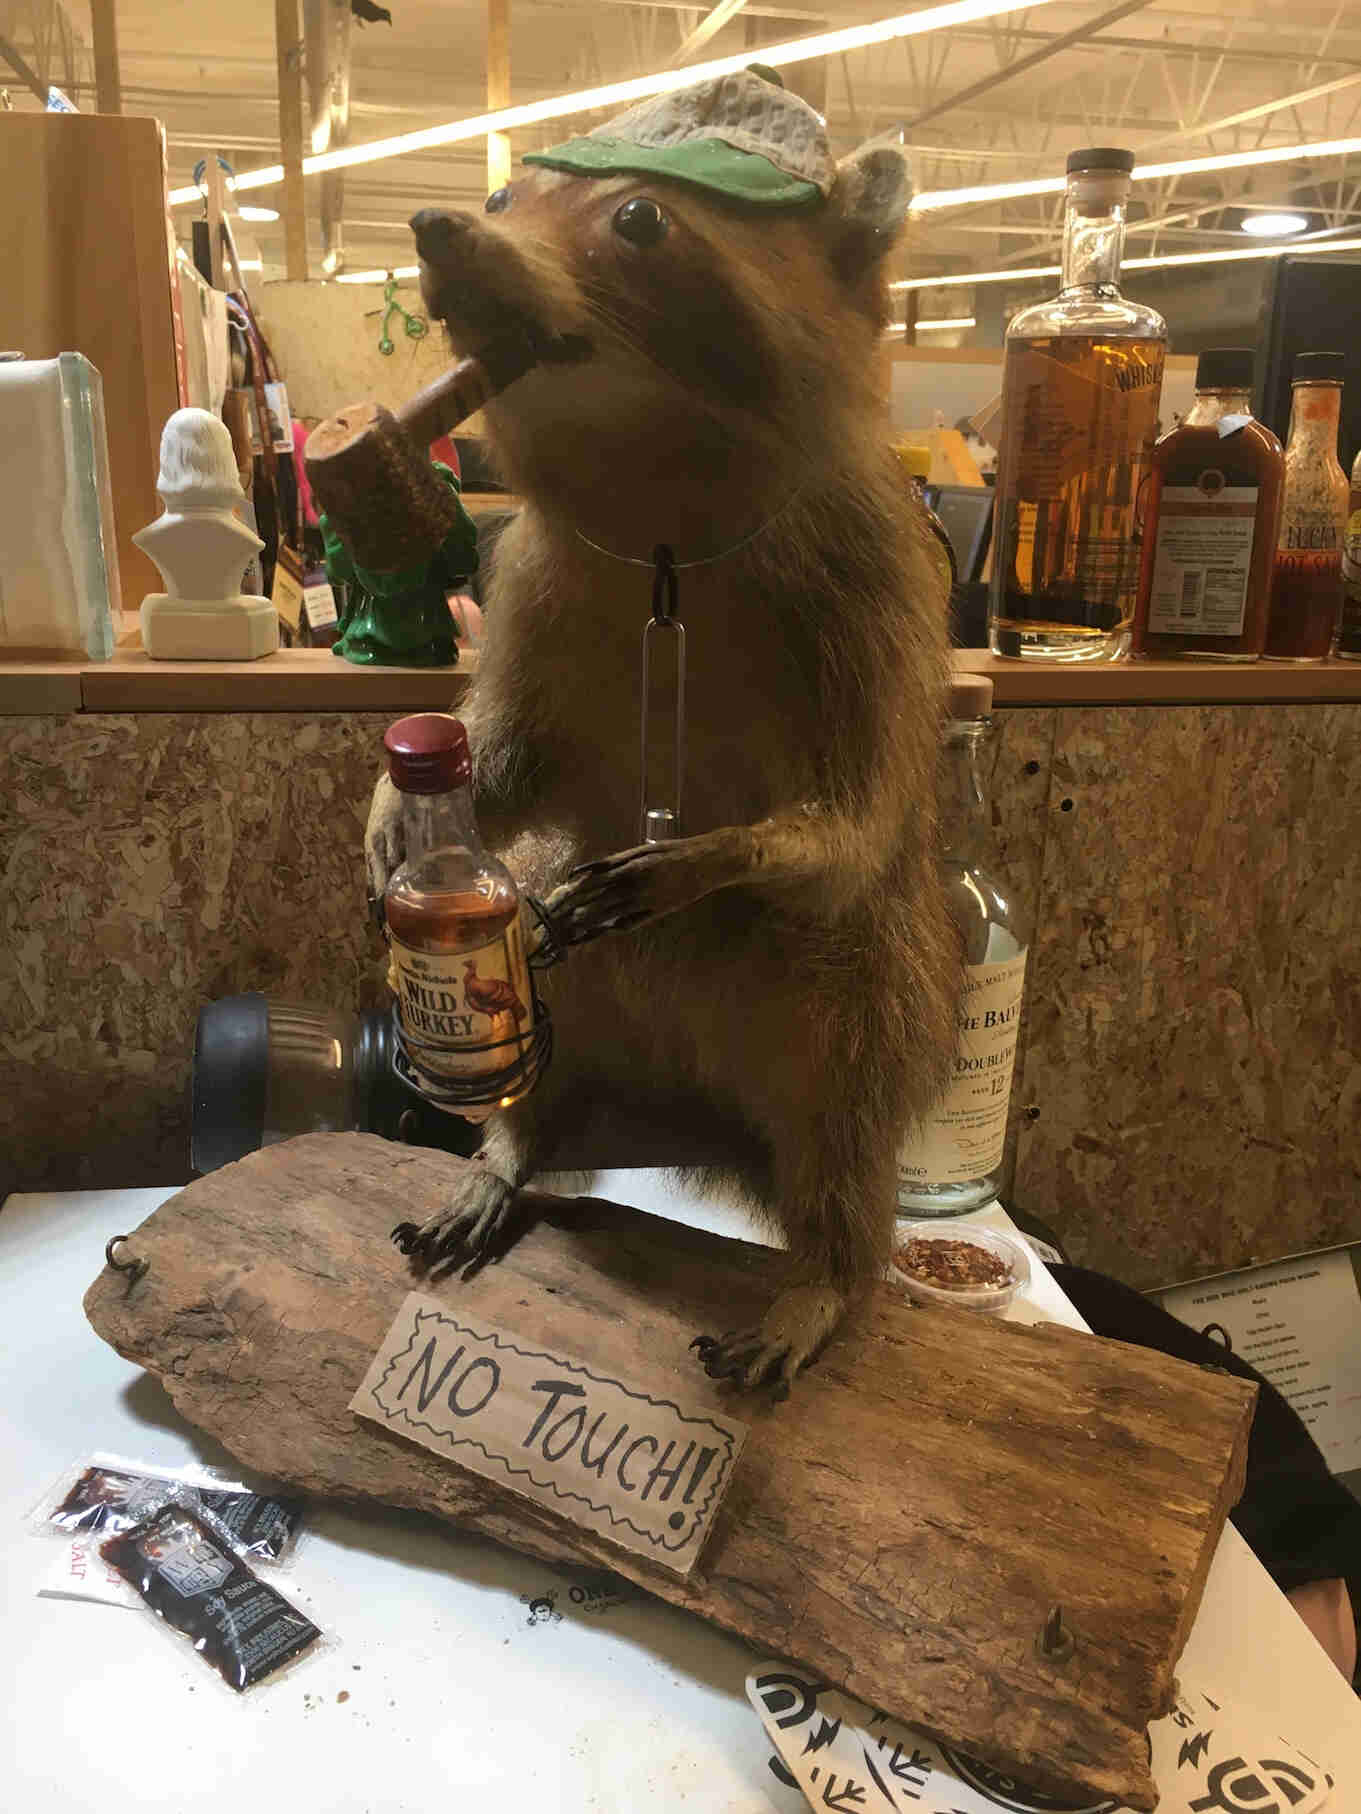 A taxidermied raccoon, with a cap, corncob pipe in it's mouth and holding a small bottle of whisky